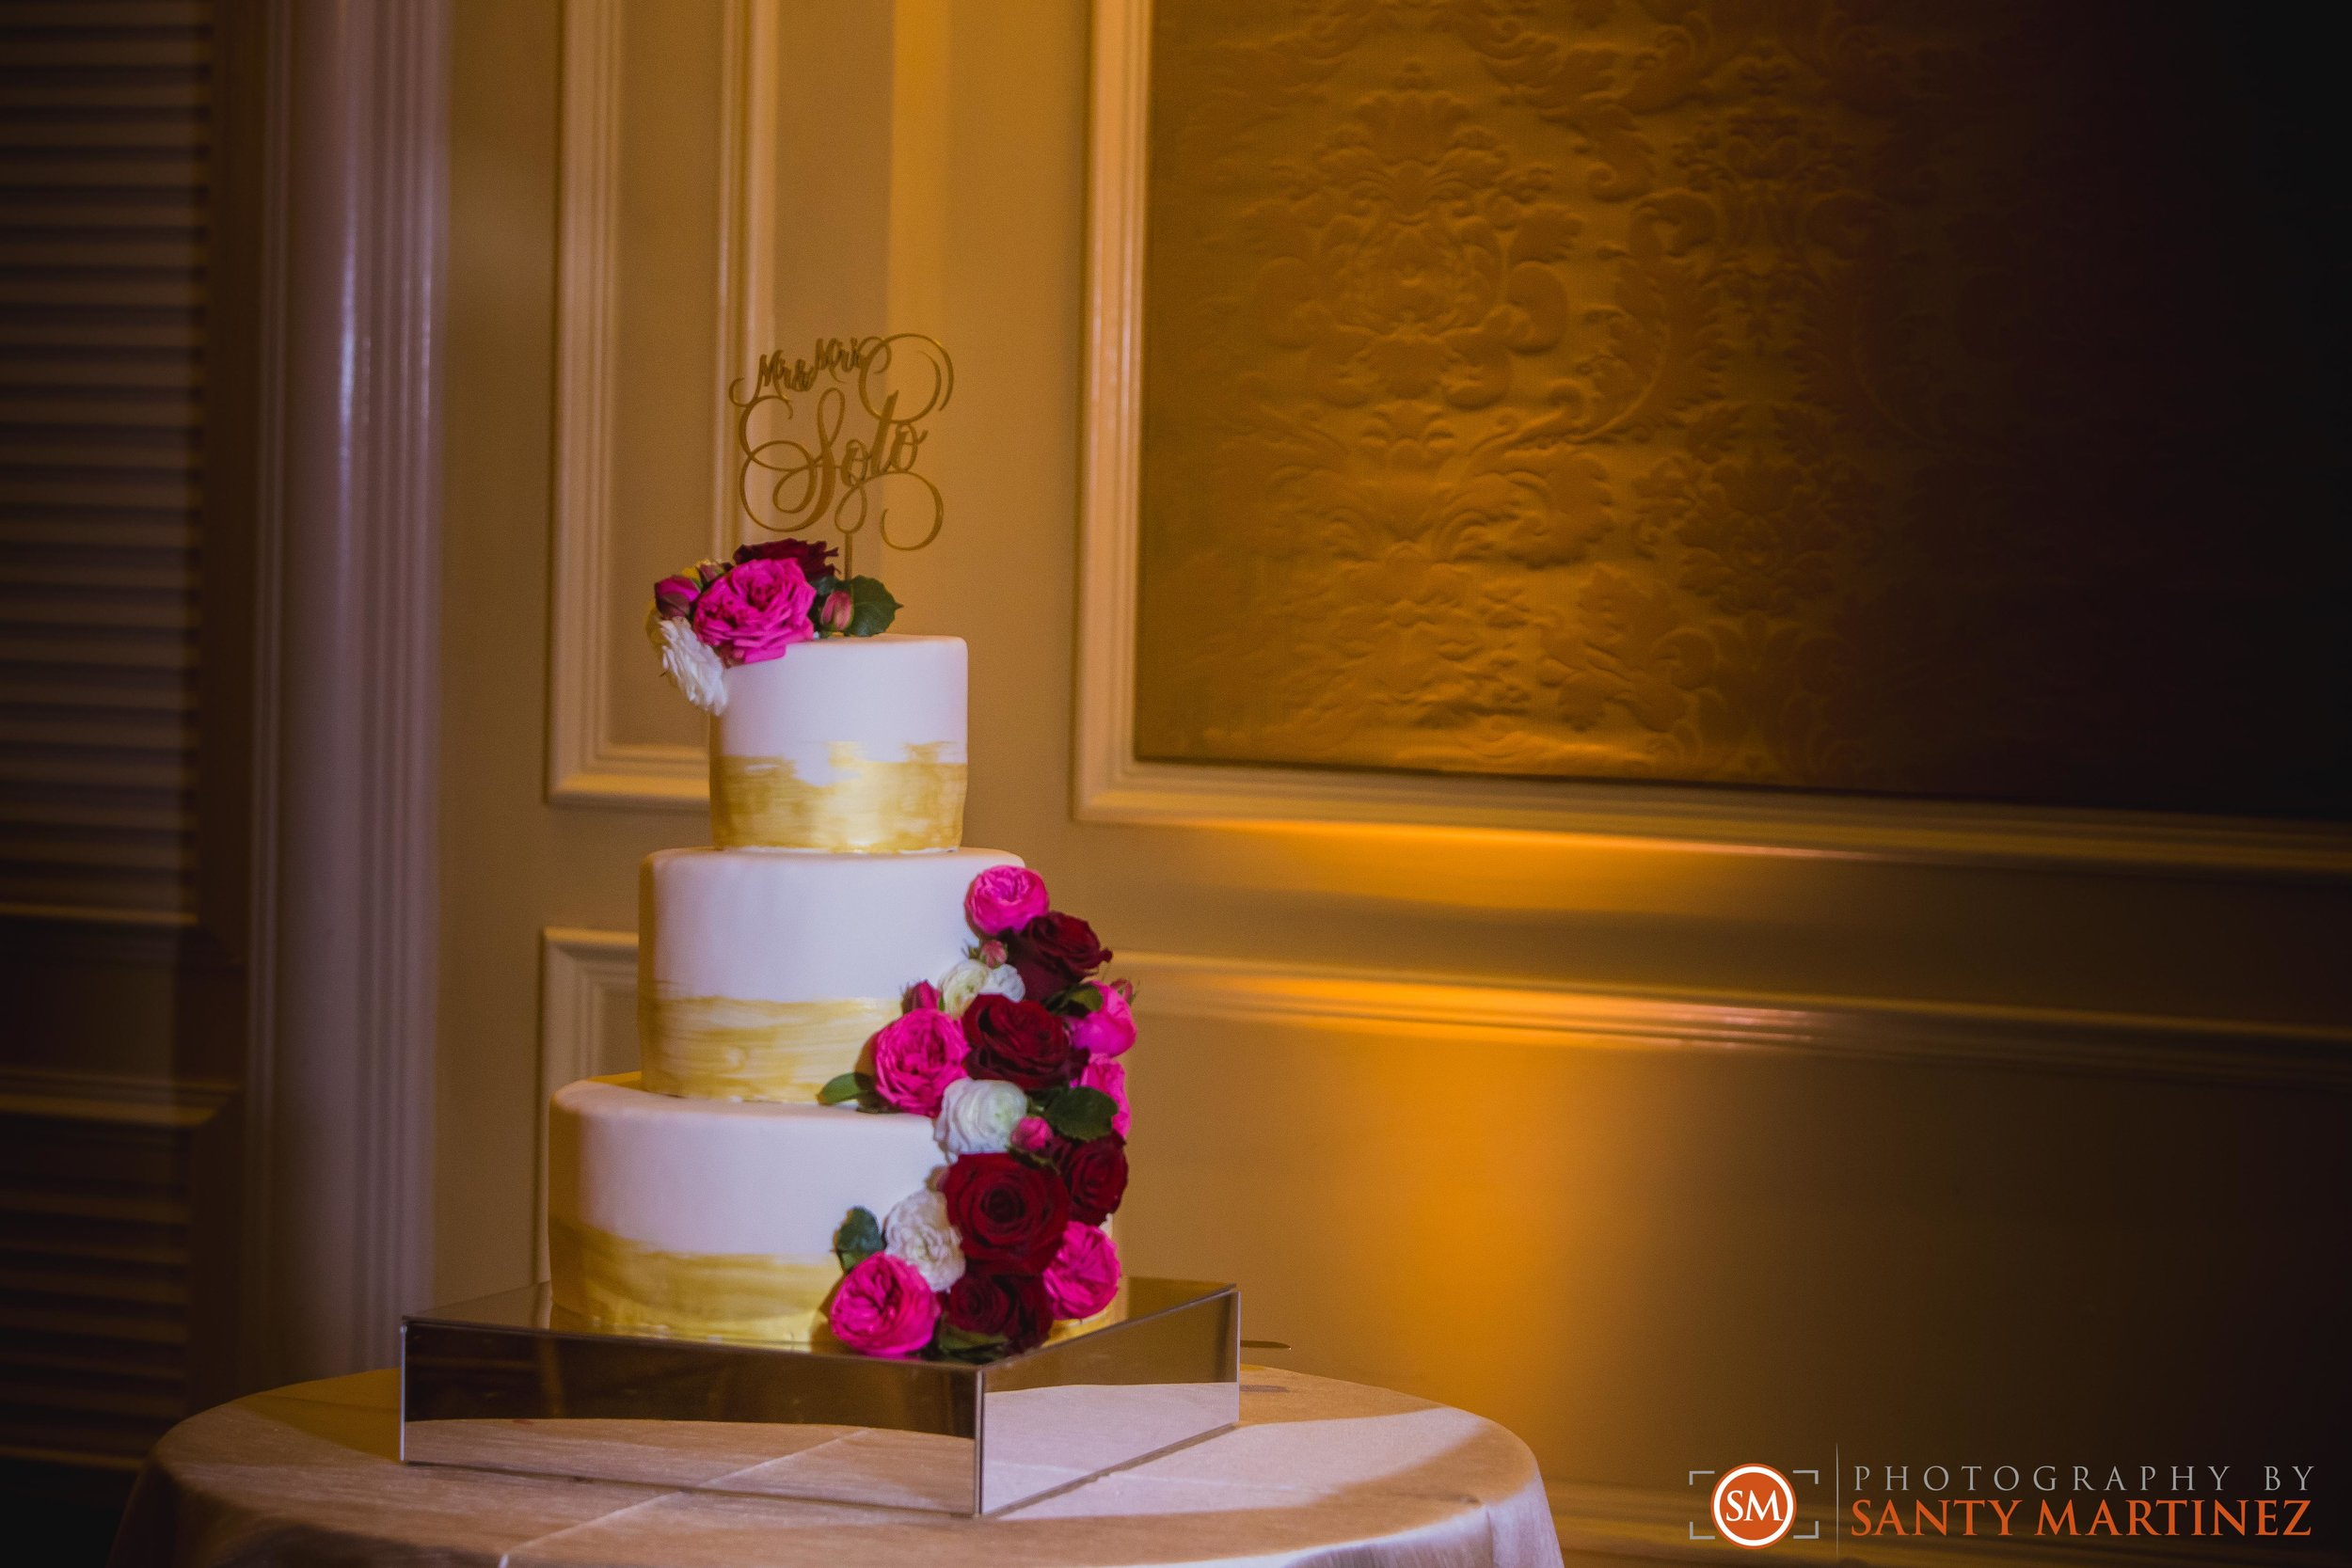 Wedding Ritz Carlton Coconut Grove - Santy Martinez-27.jpg